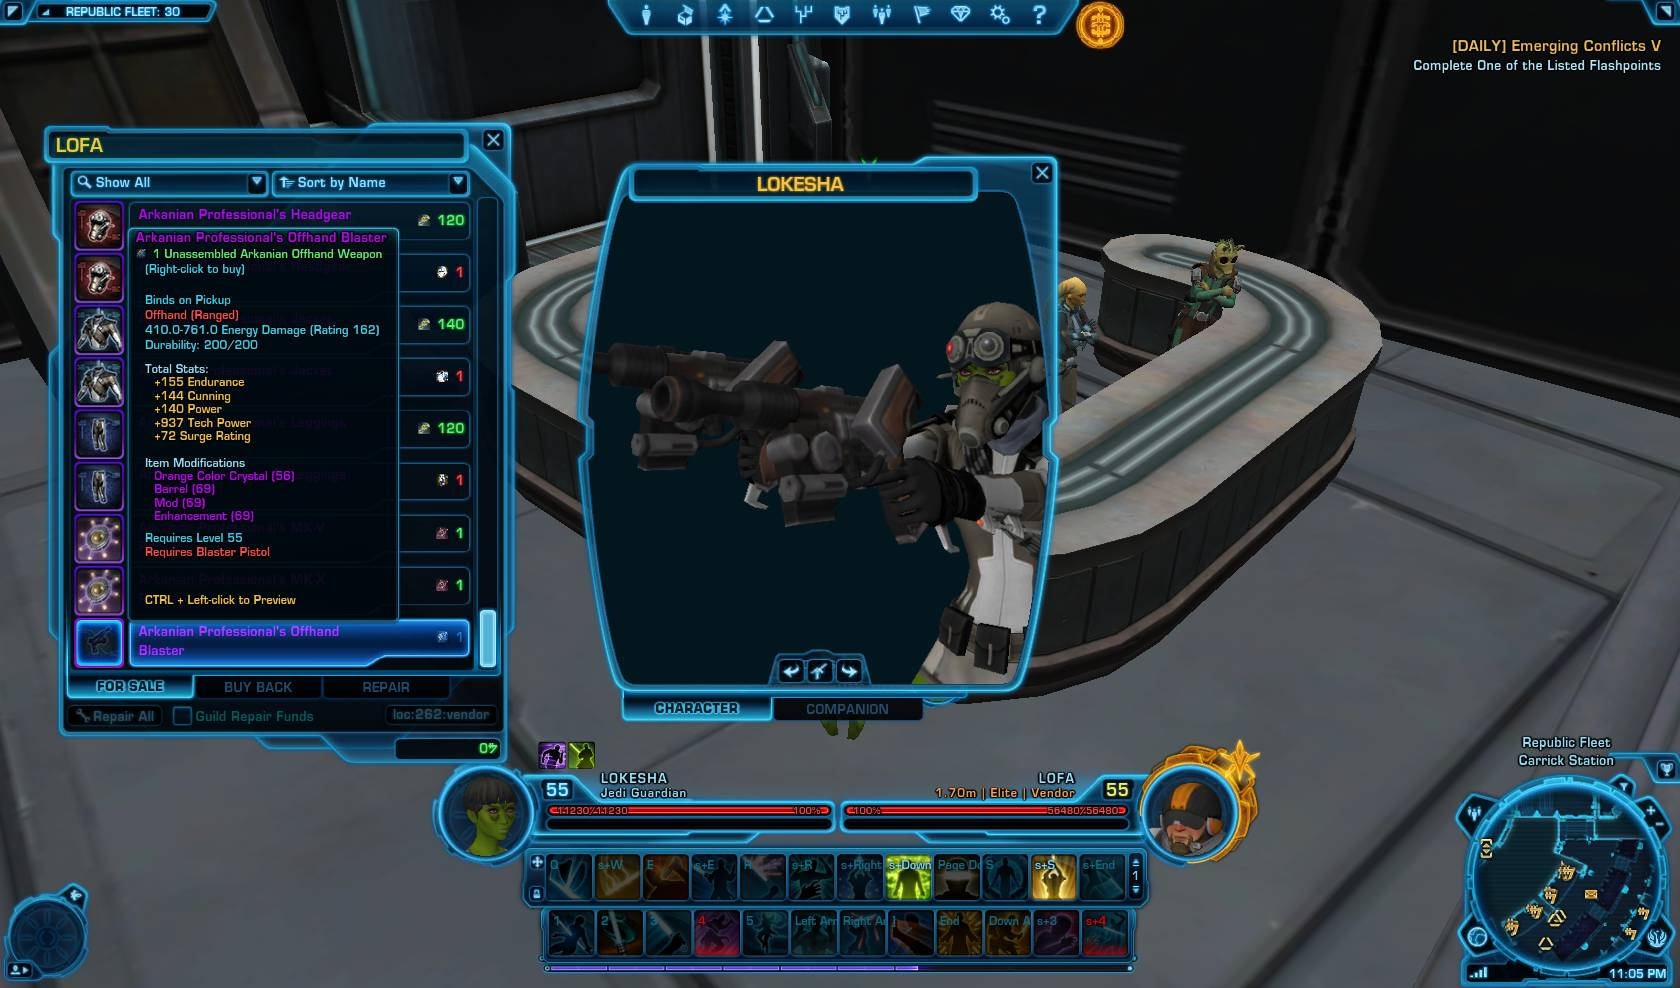 swtor arkanian professional offhand blaster